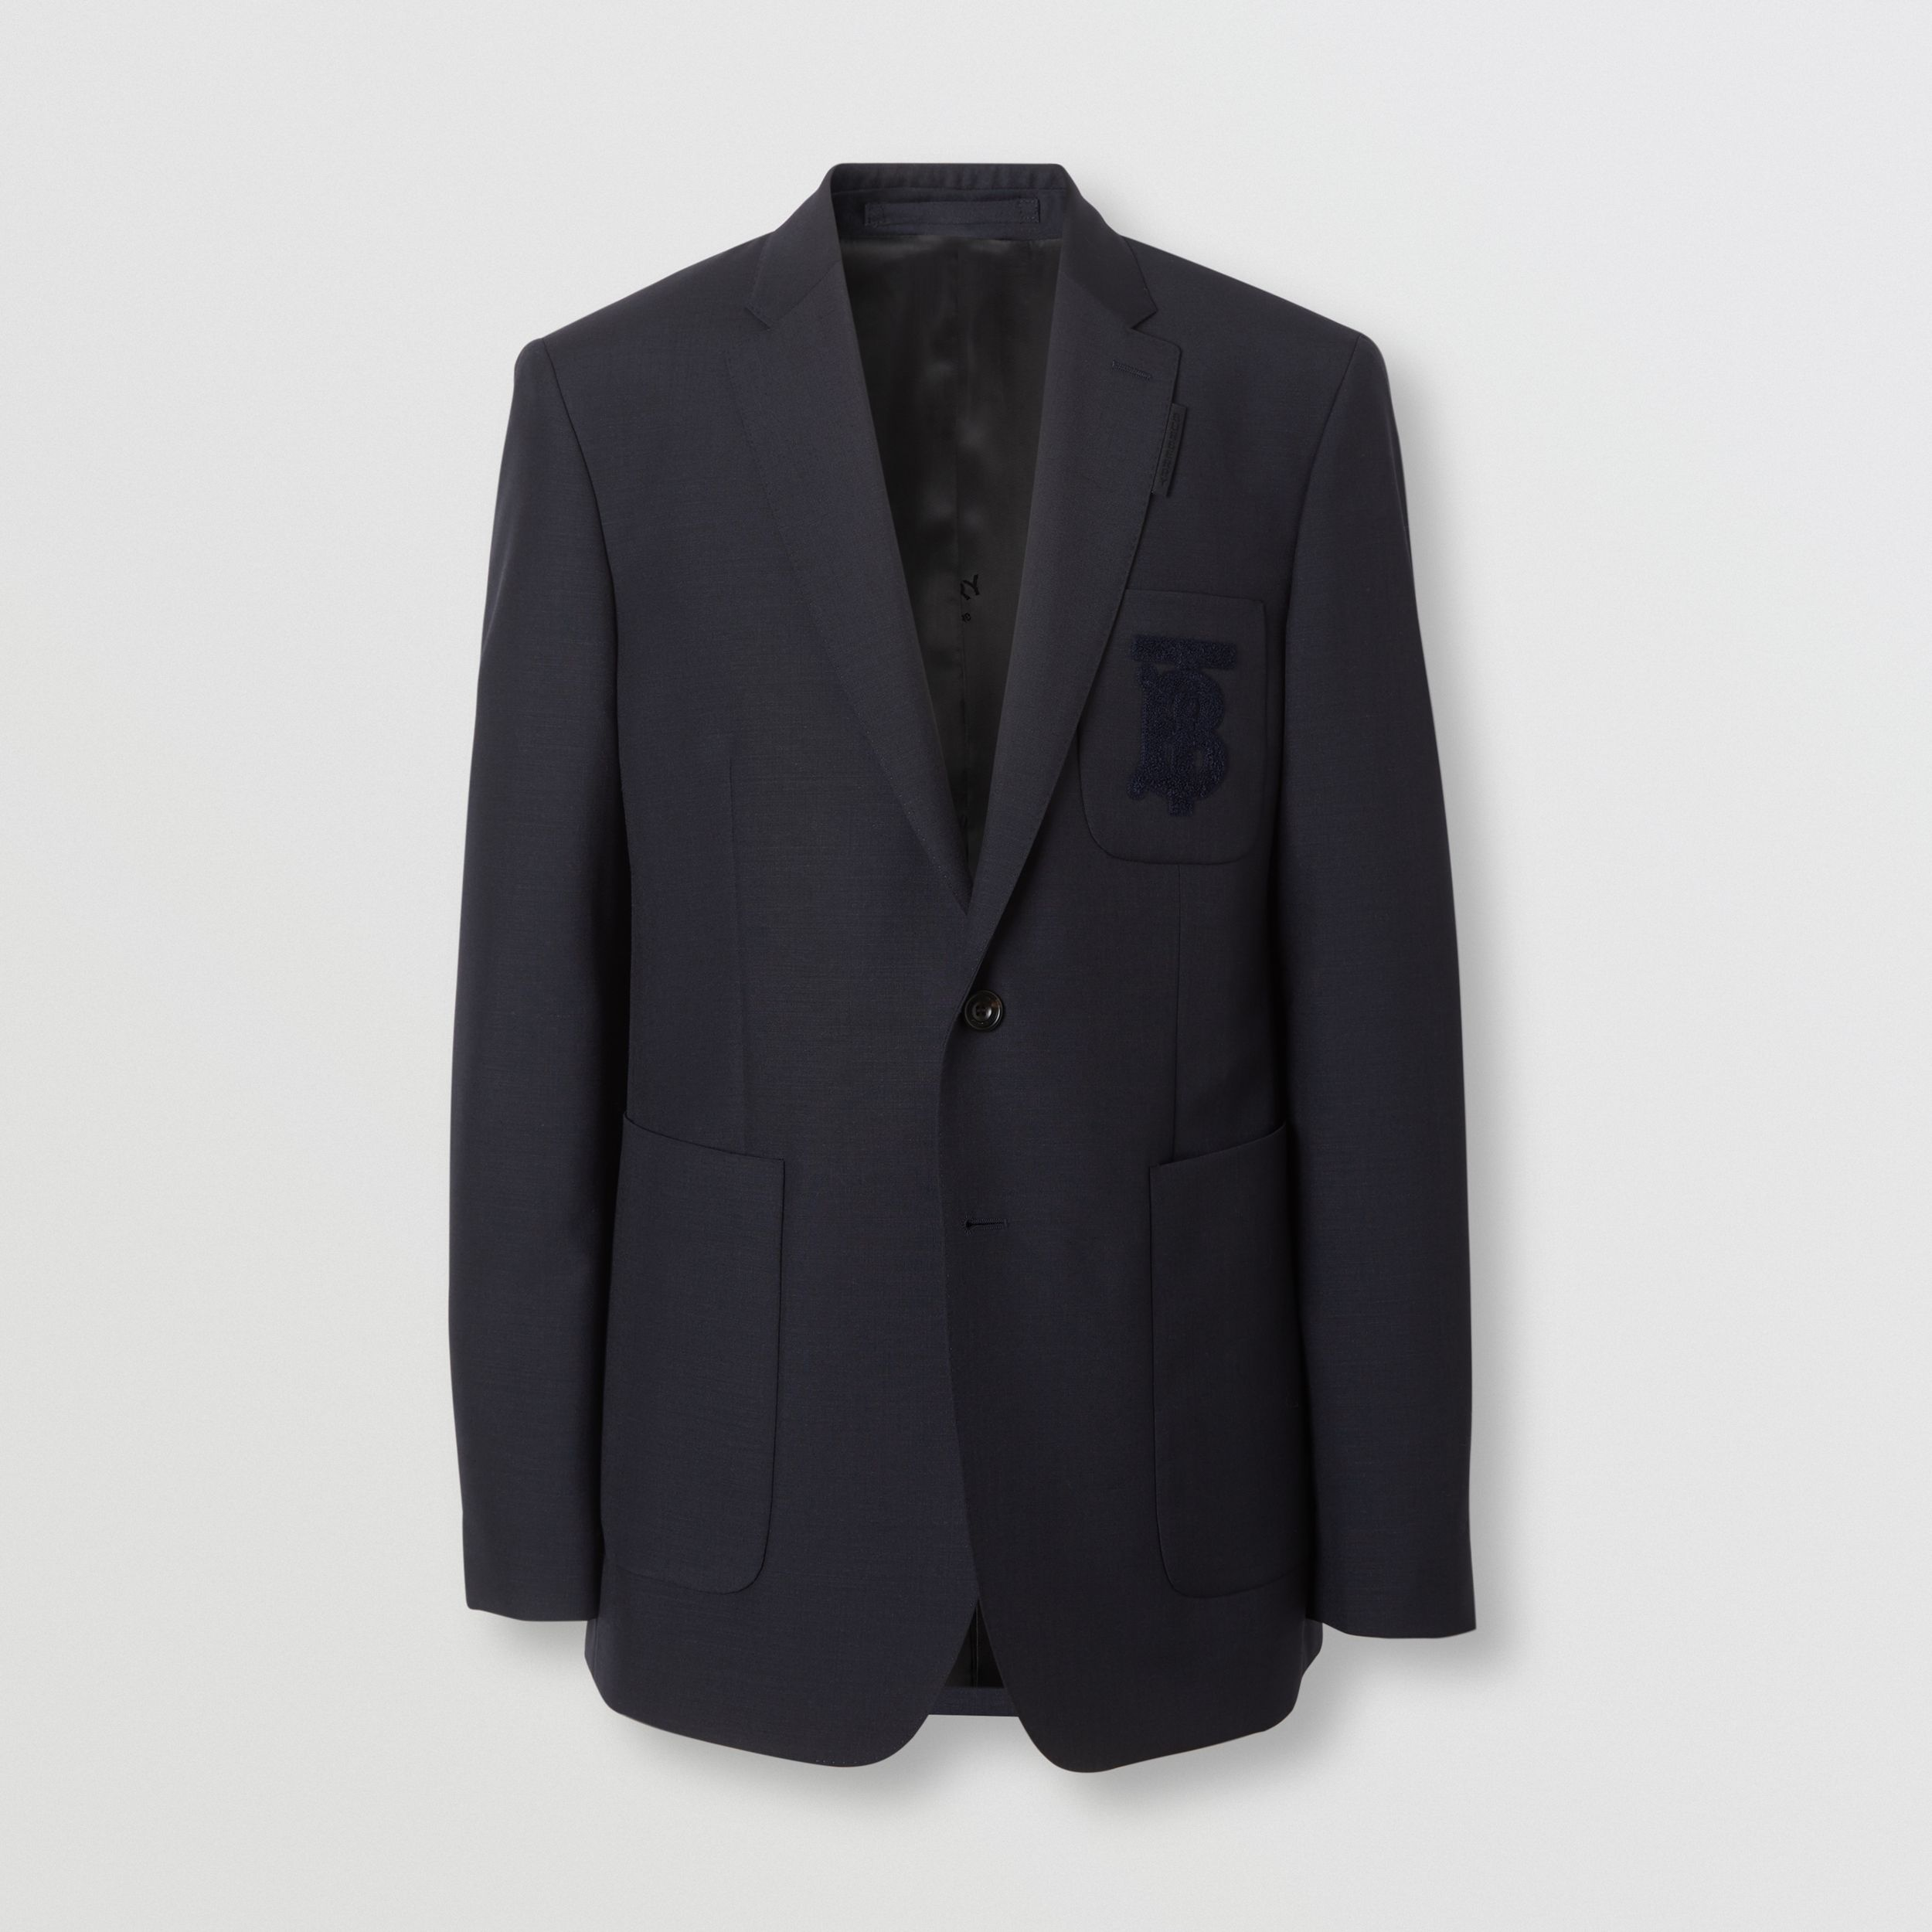 Slim Fit Monogram Motif Wool Mohair Tailored Jacket in Navy - Men | Burberry - 4